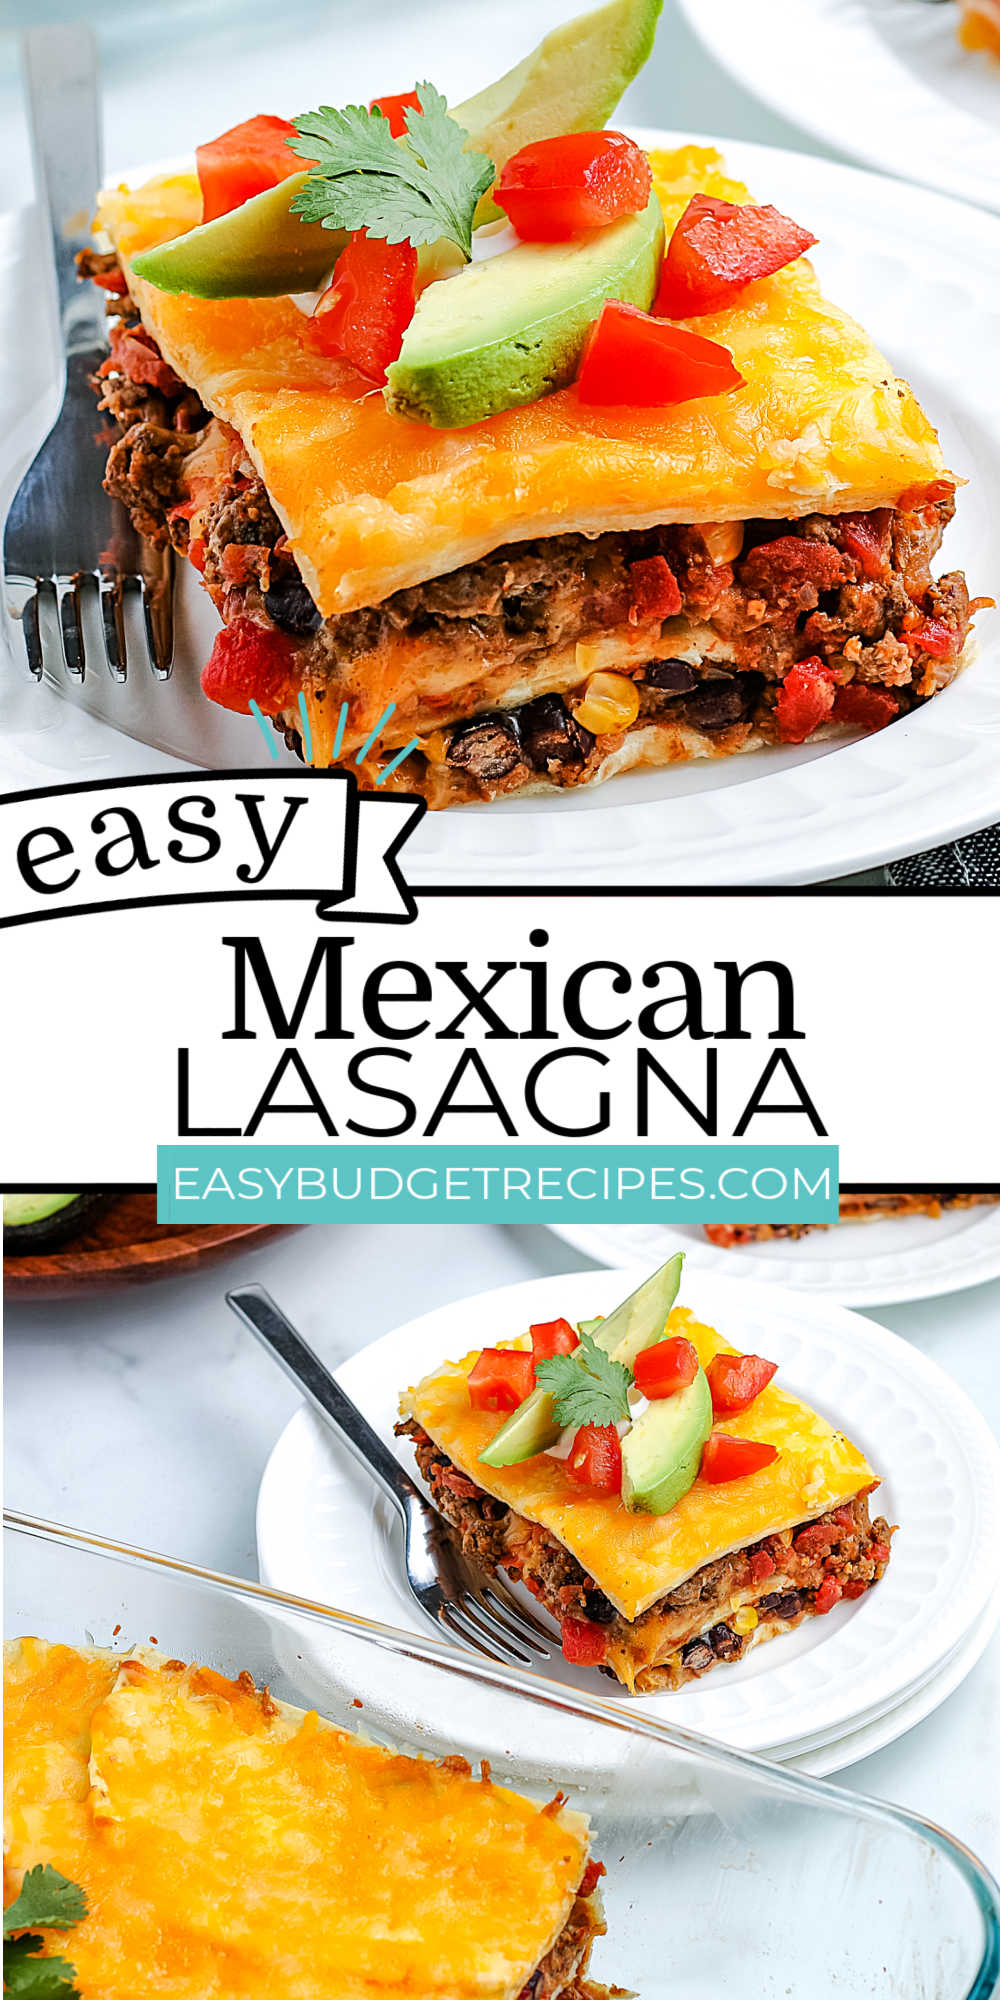 This Mexican Lasagna recipe is loaded with stacked tortillas, seasoned ground beef, Rotel tomatoes, corn, black beans, refried beans, and cheese. It's a freezer-friendly meal that's an easy weeknight dinner. via @easybudgetrecipes